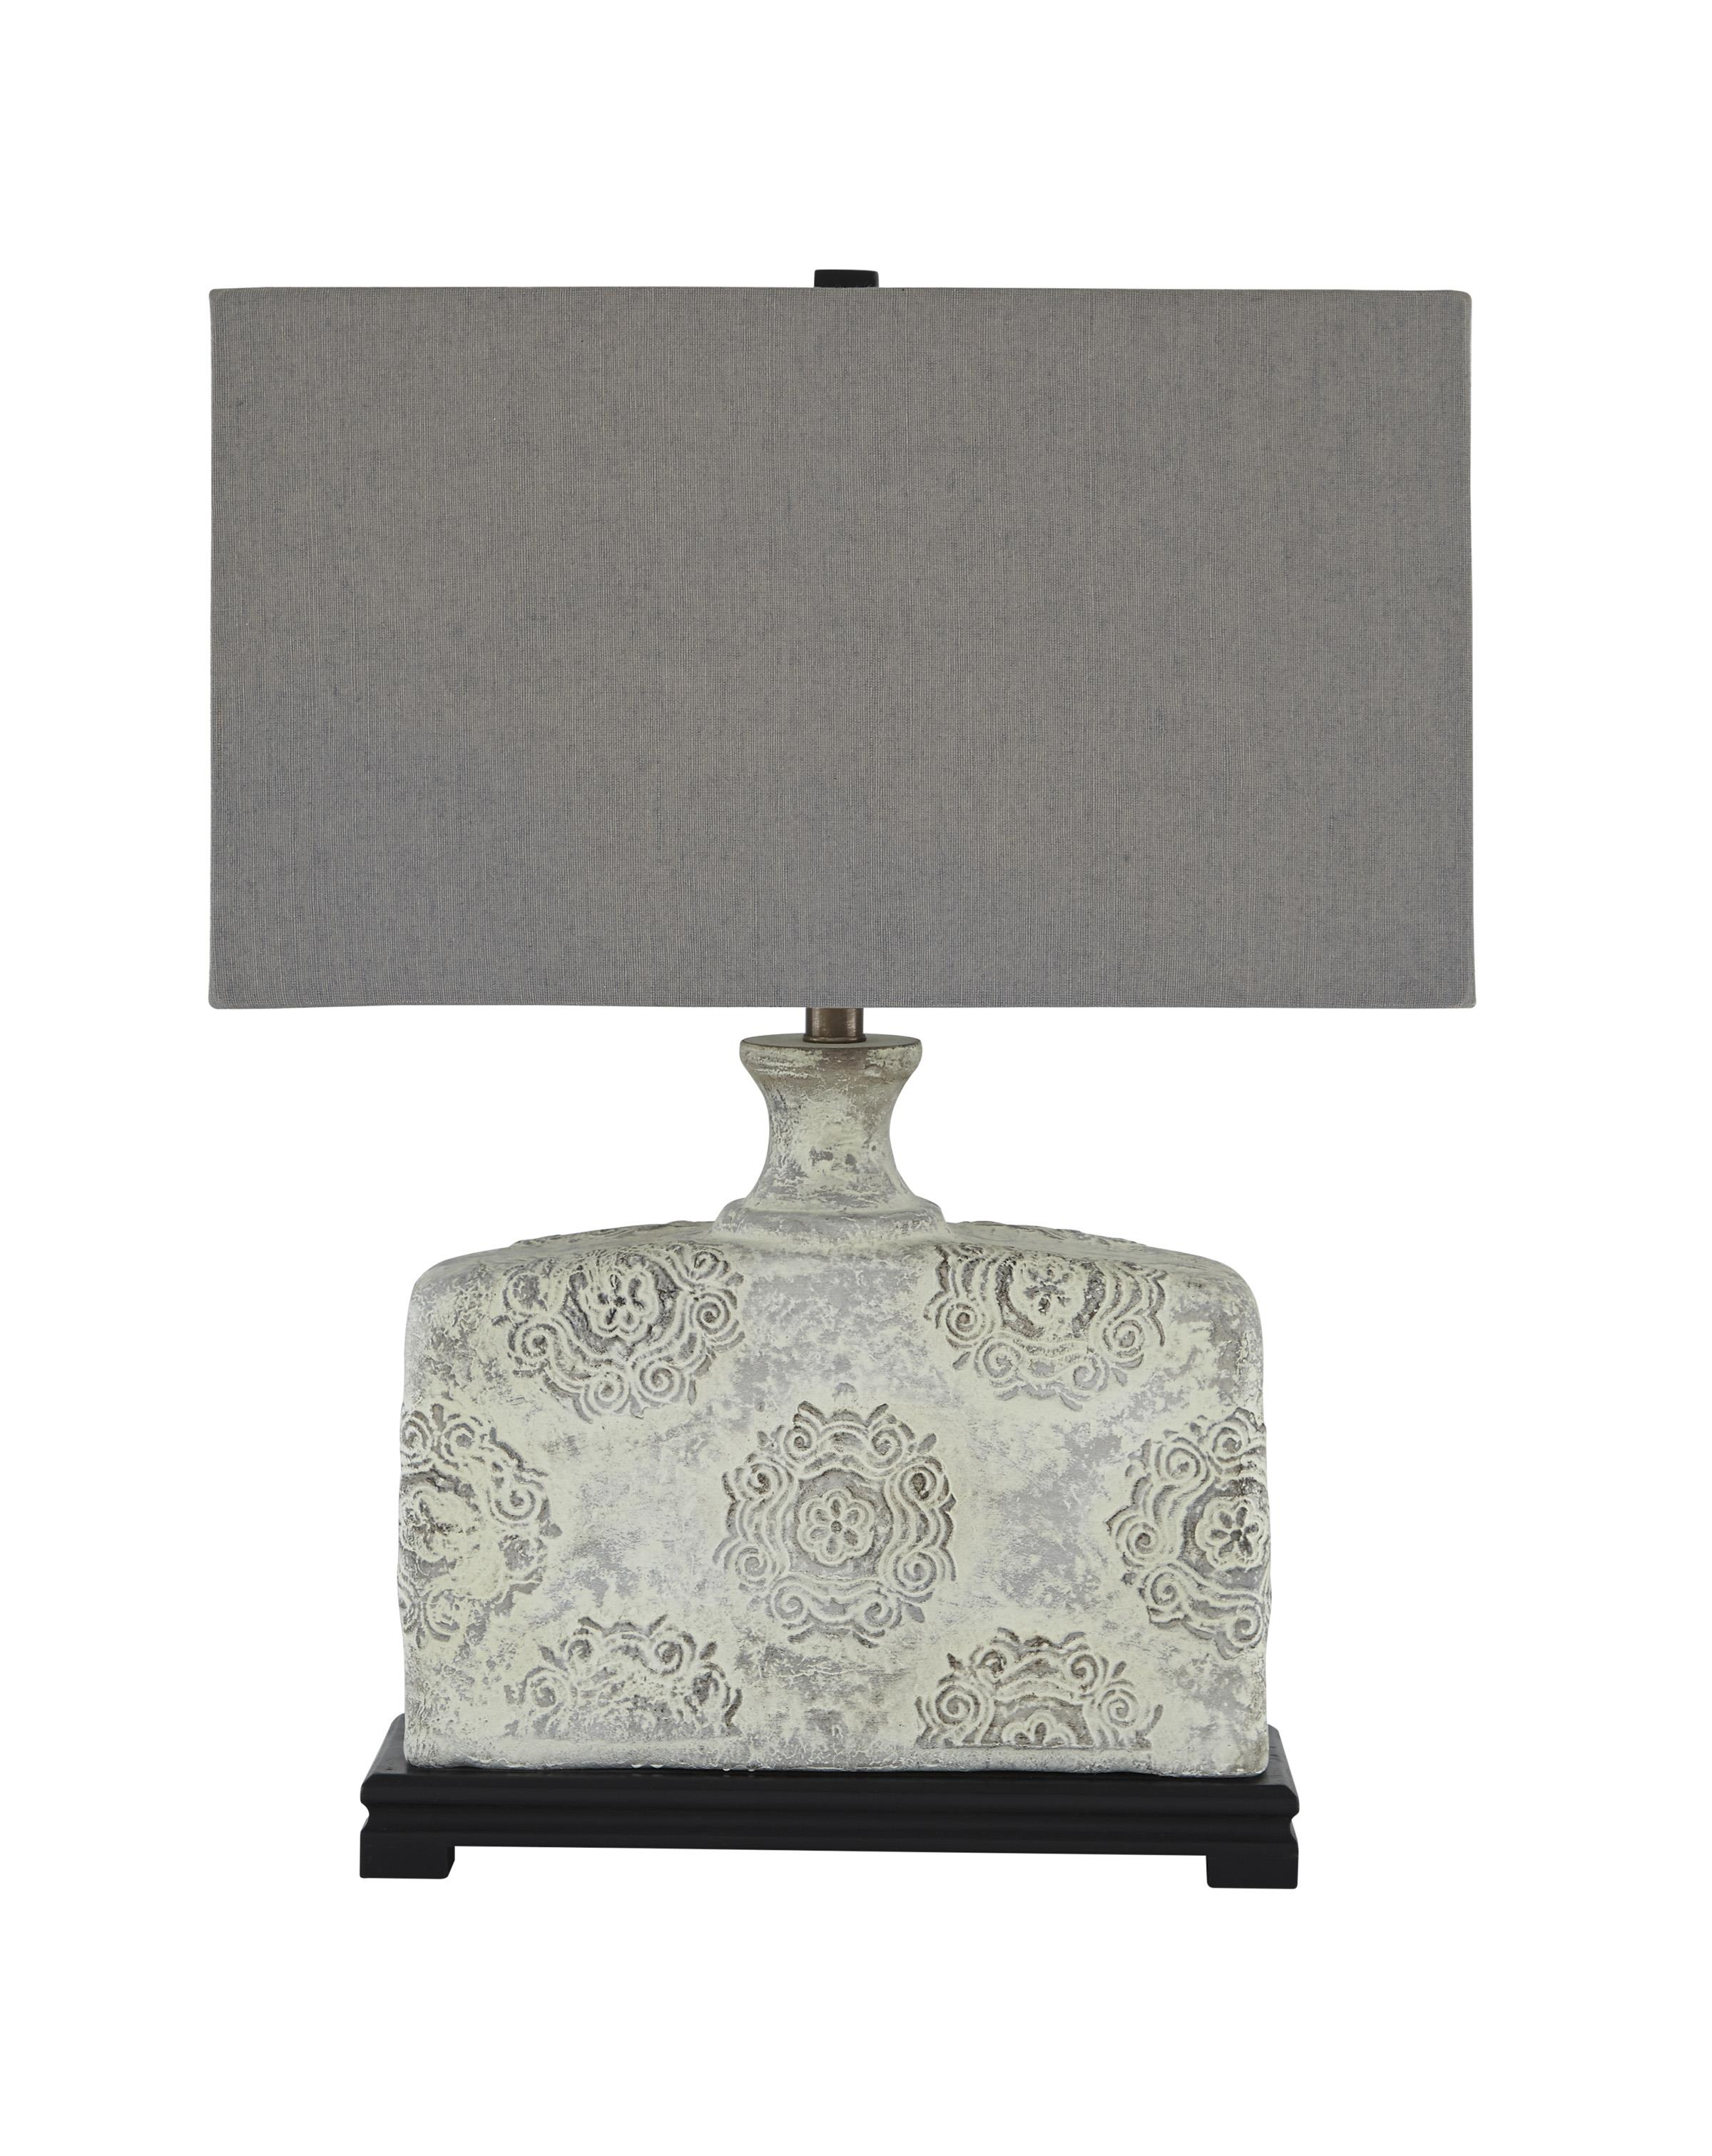 Signature Design by Ashley Lamps - Vintage Style Shiko Antique White Table Lamp - Item Number: L235464